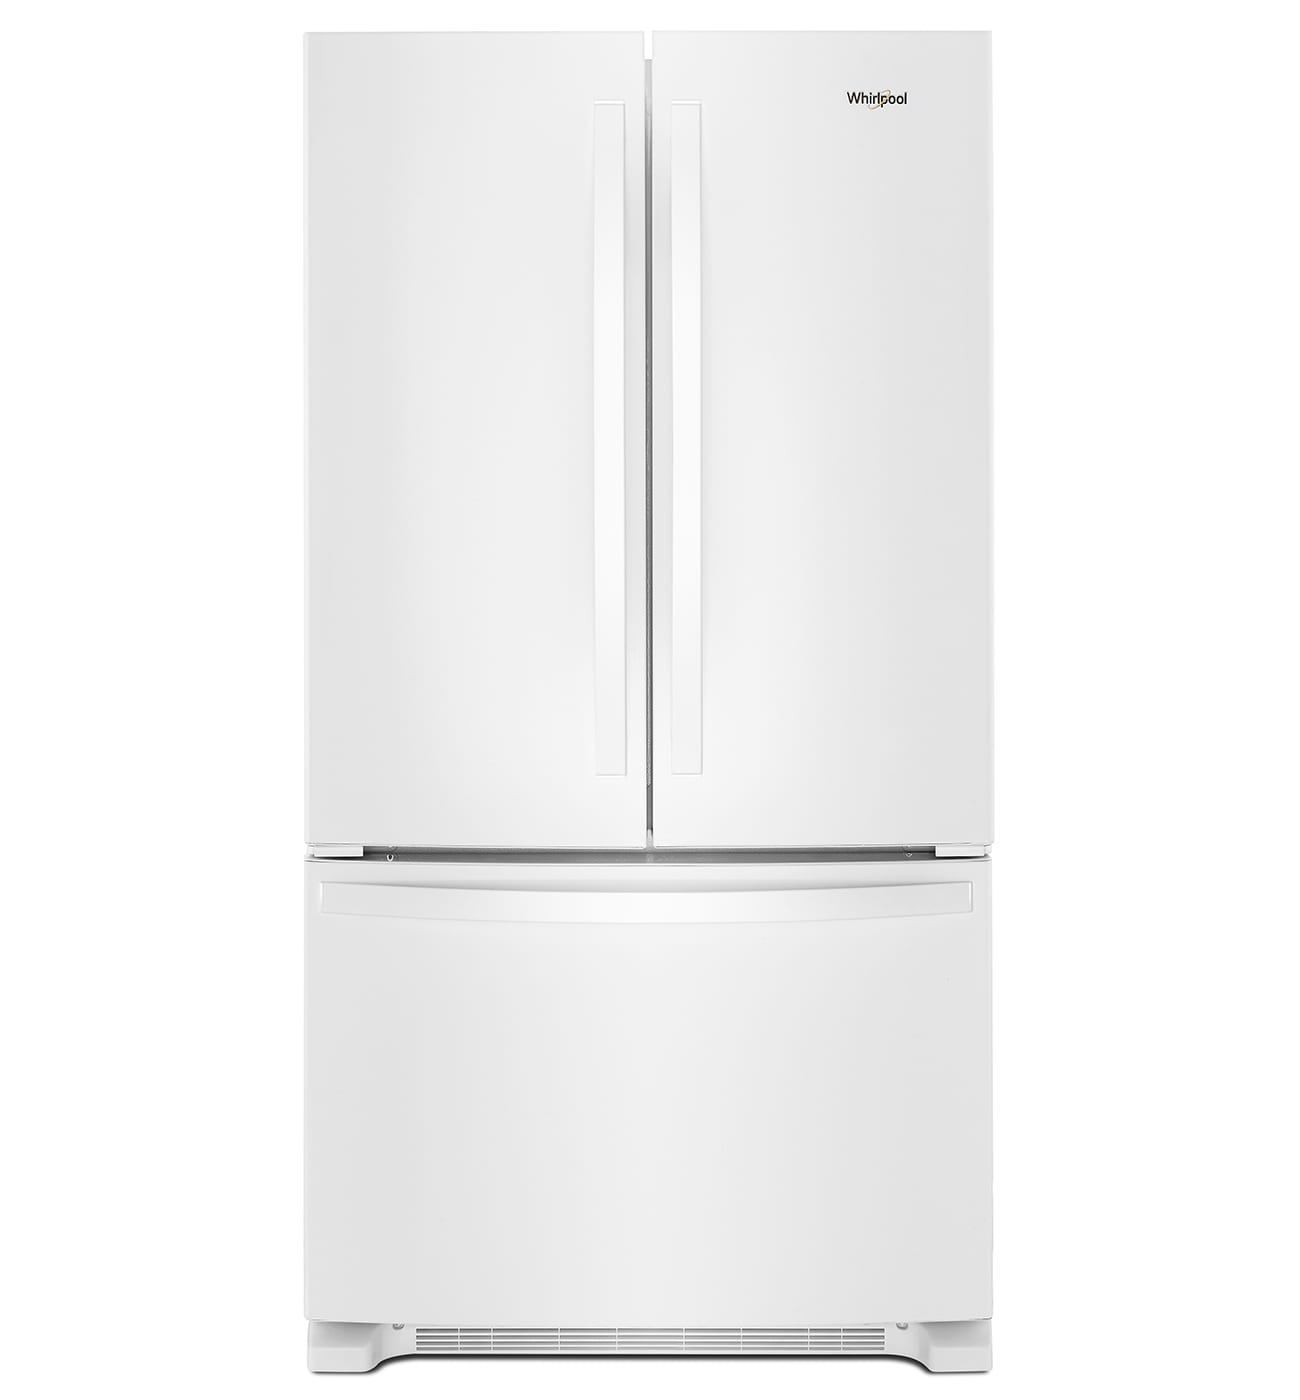 Whirlpool Wrf540cwhw 36 200 Cu Ft White Counter Depth French